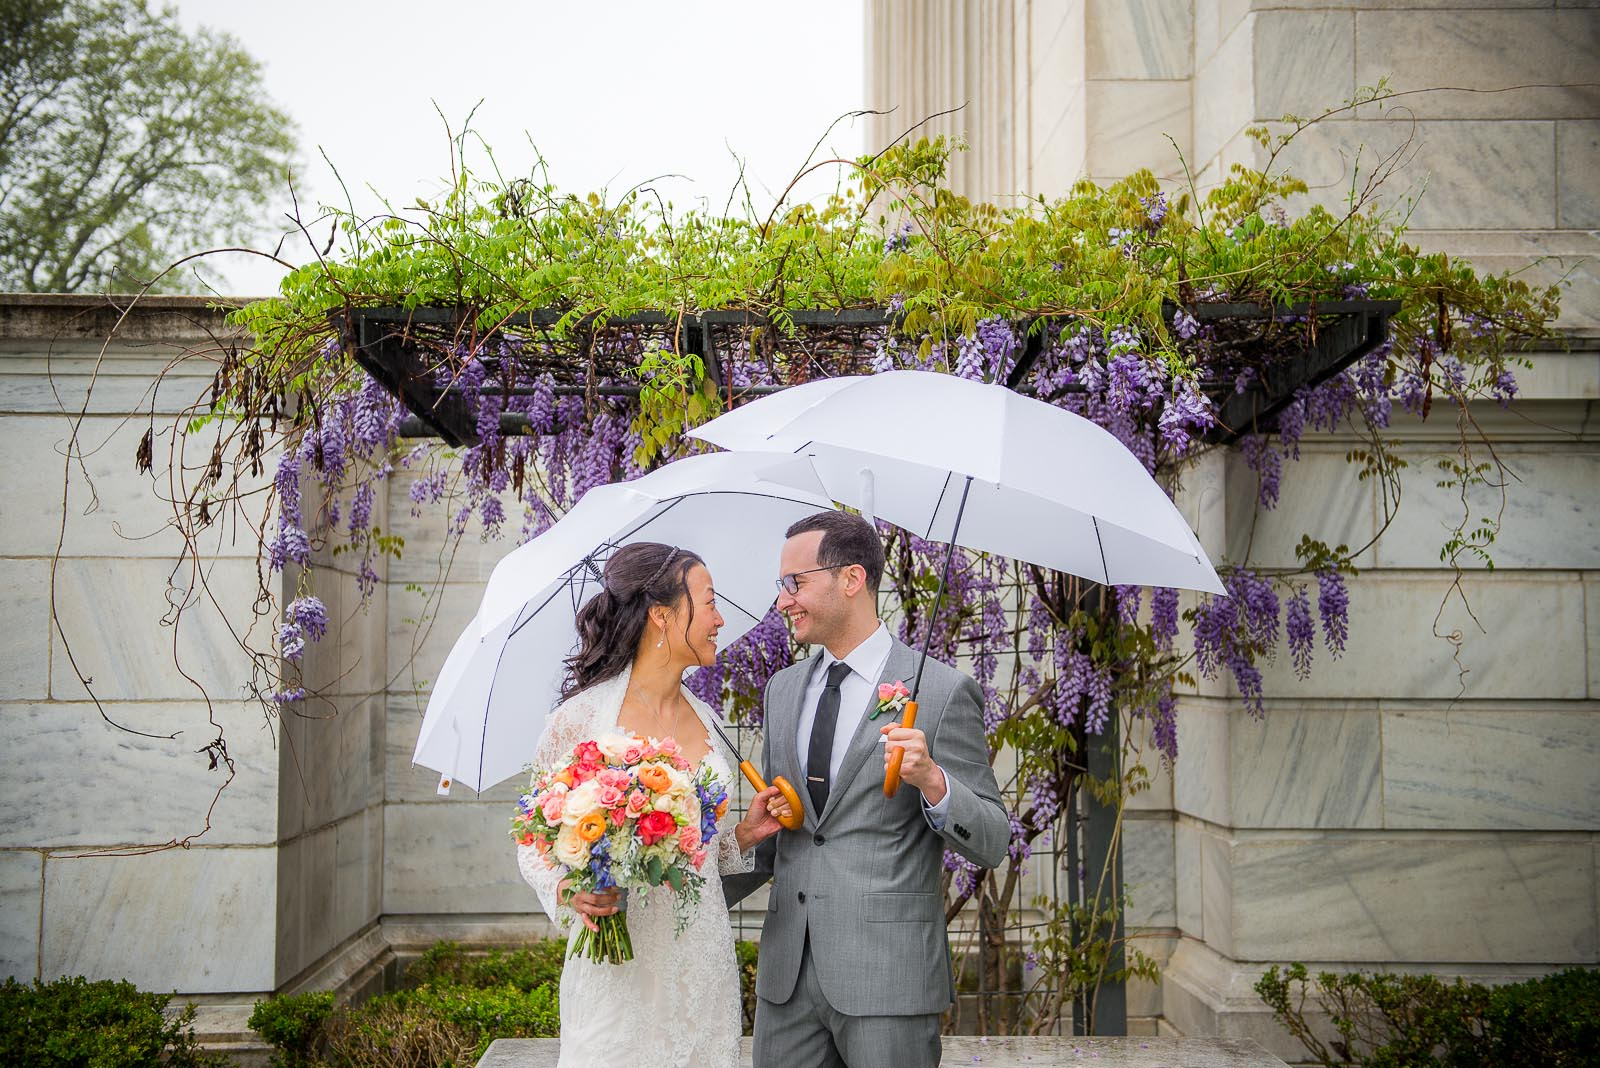 Eric_and_Christy_Photography_Blog_Wedding_Anne_Michael-19